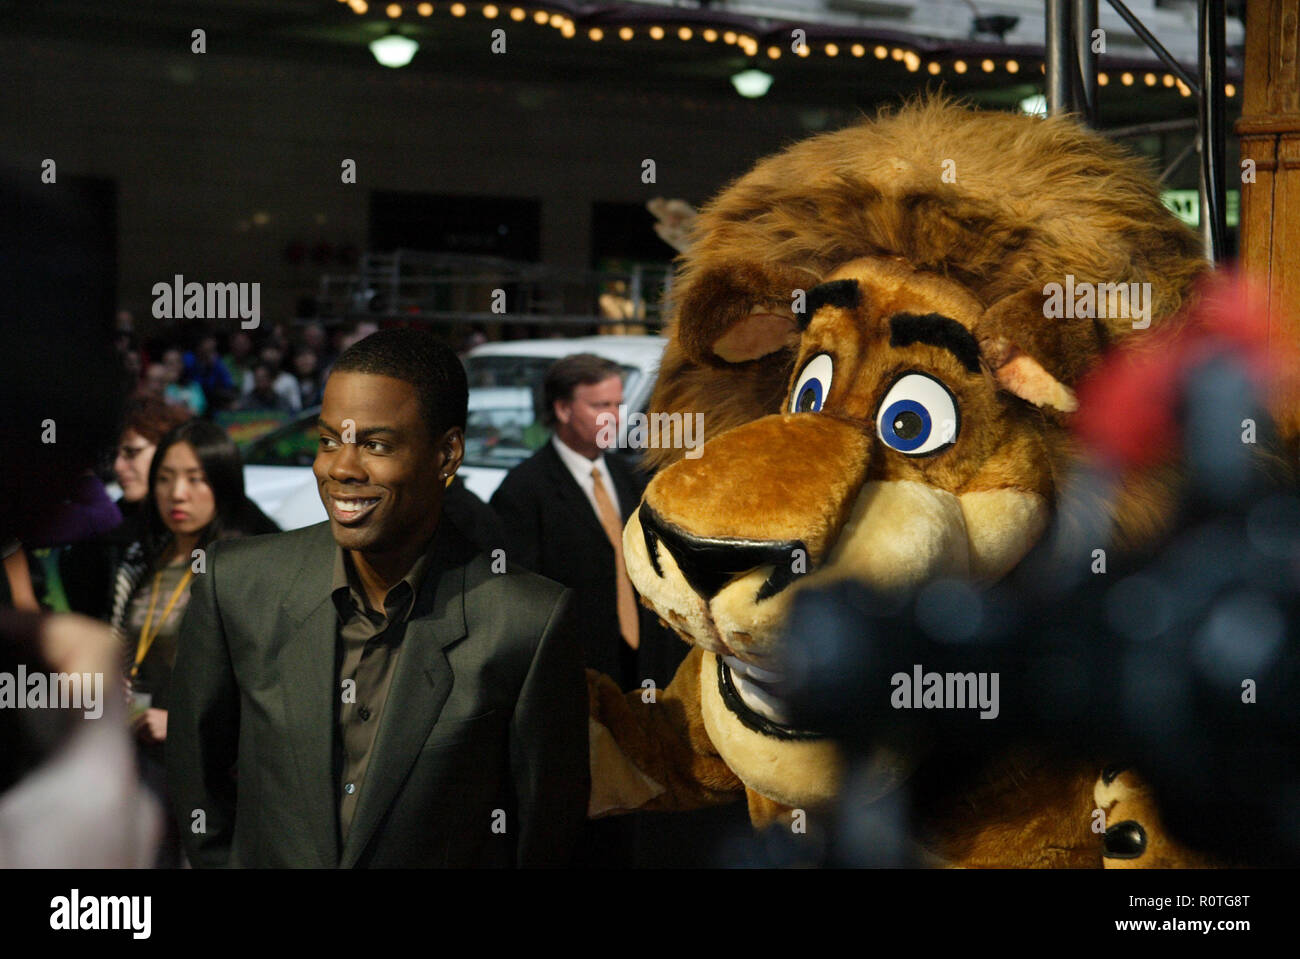 Chris Rock And Alex The Lion The Premiere Of Madagascar Escape 2 Africa At The State Theatre Sydney Australia 17 11 08 Stock Photo Alamy